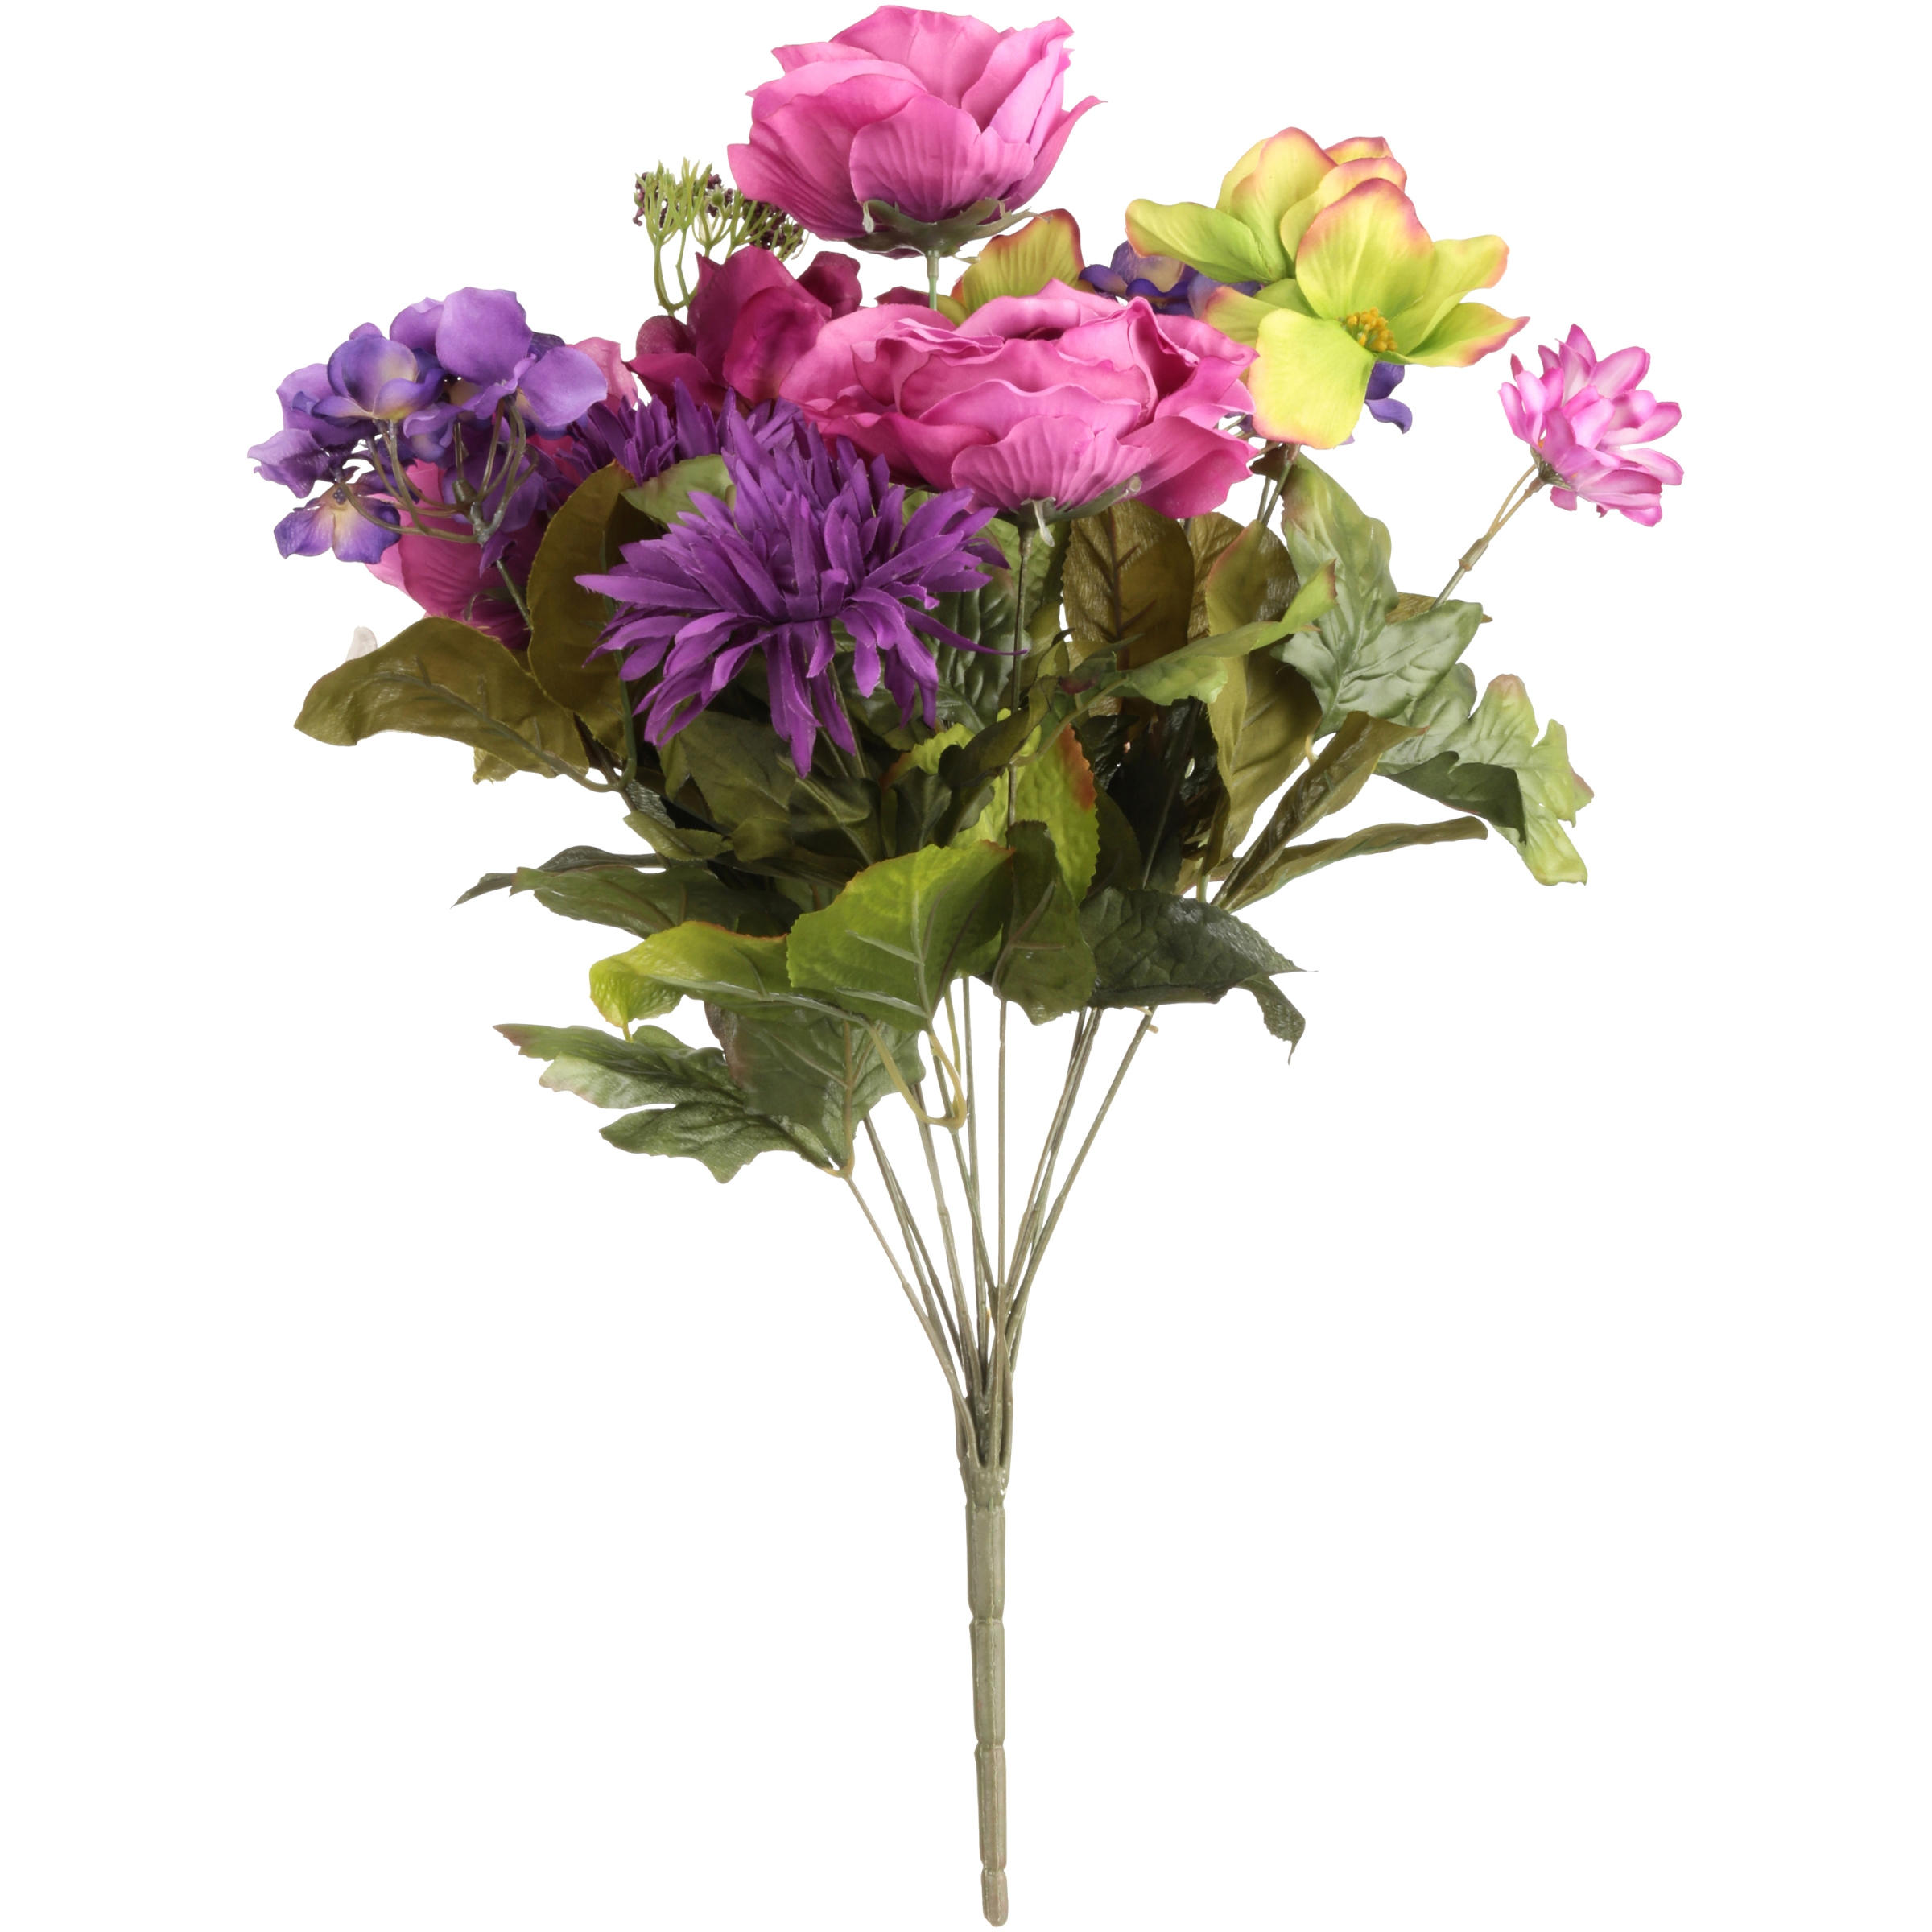 Purple Cabbage Rose Mixed Bouquet Decorative Flowers